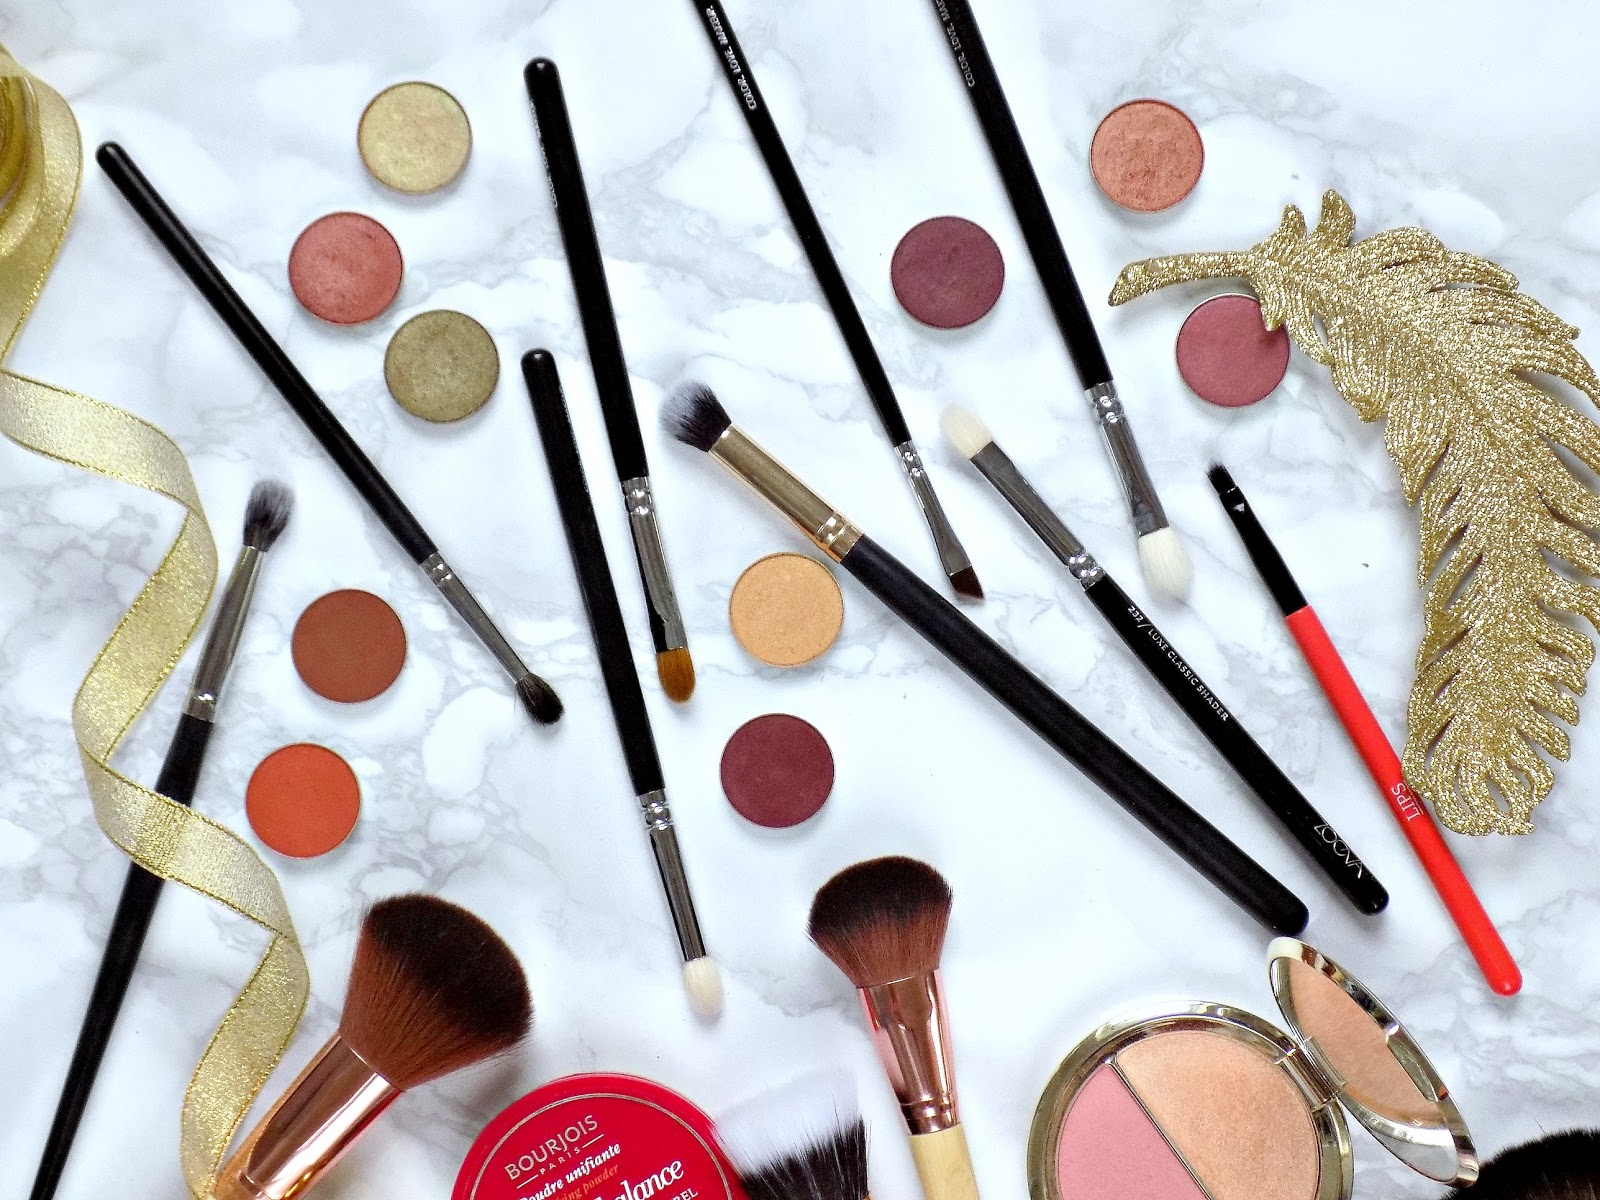 Affordable eye makeup brushes